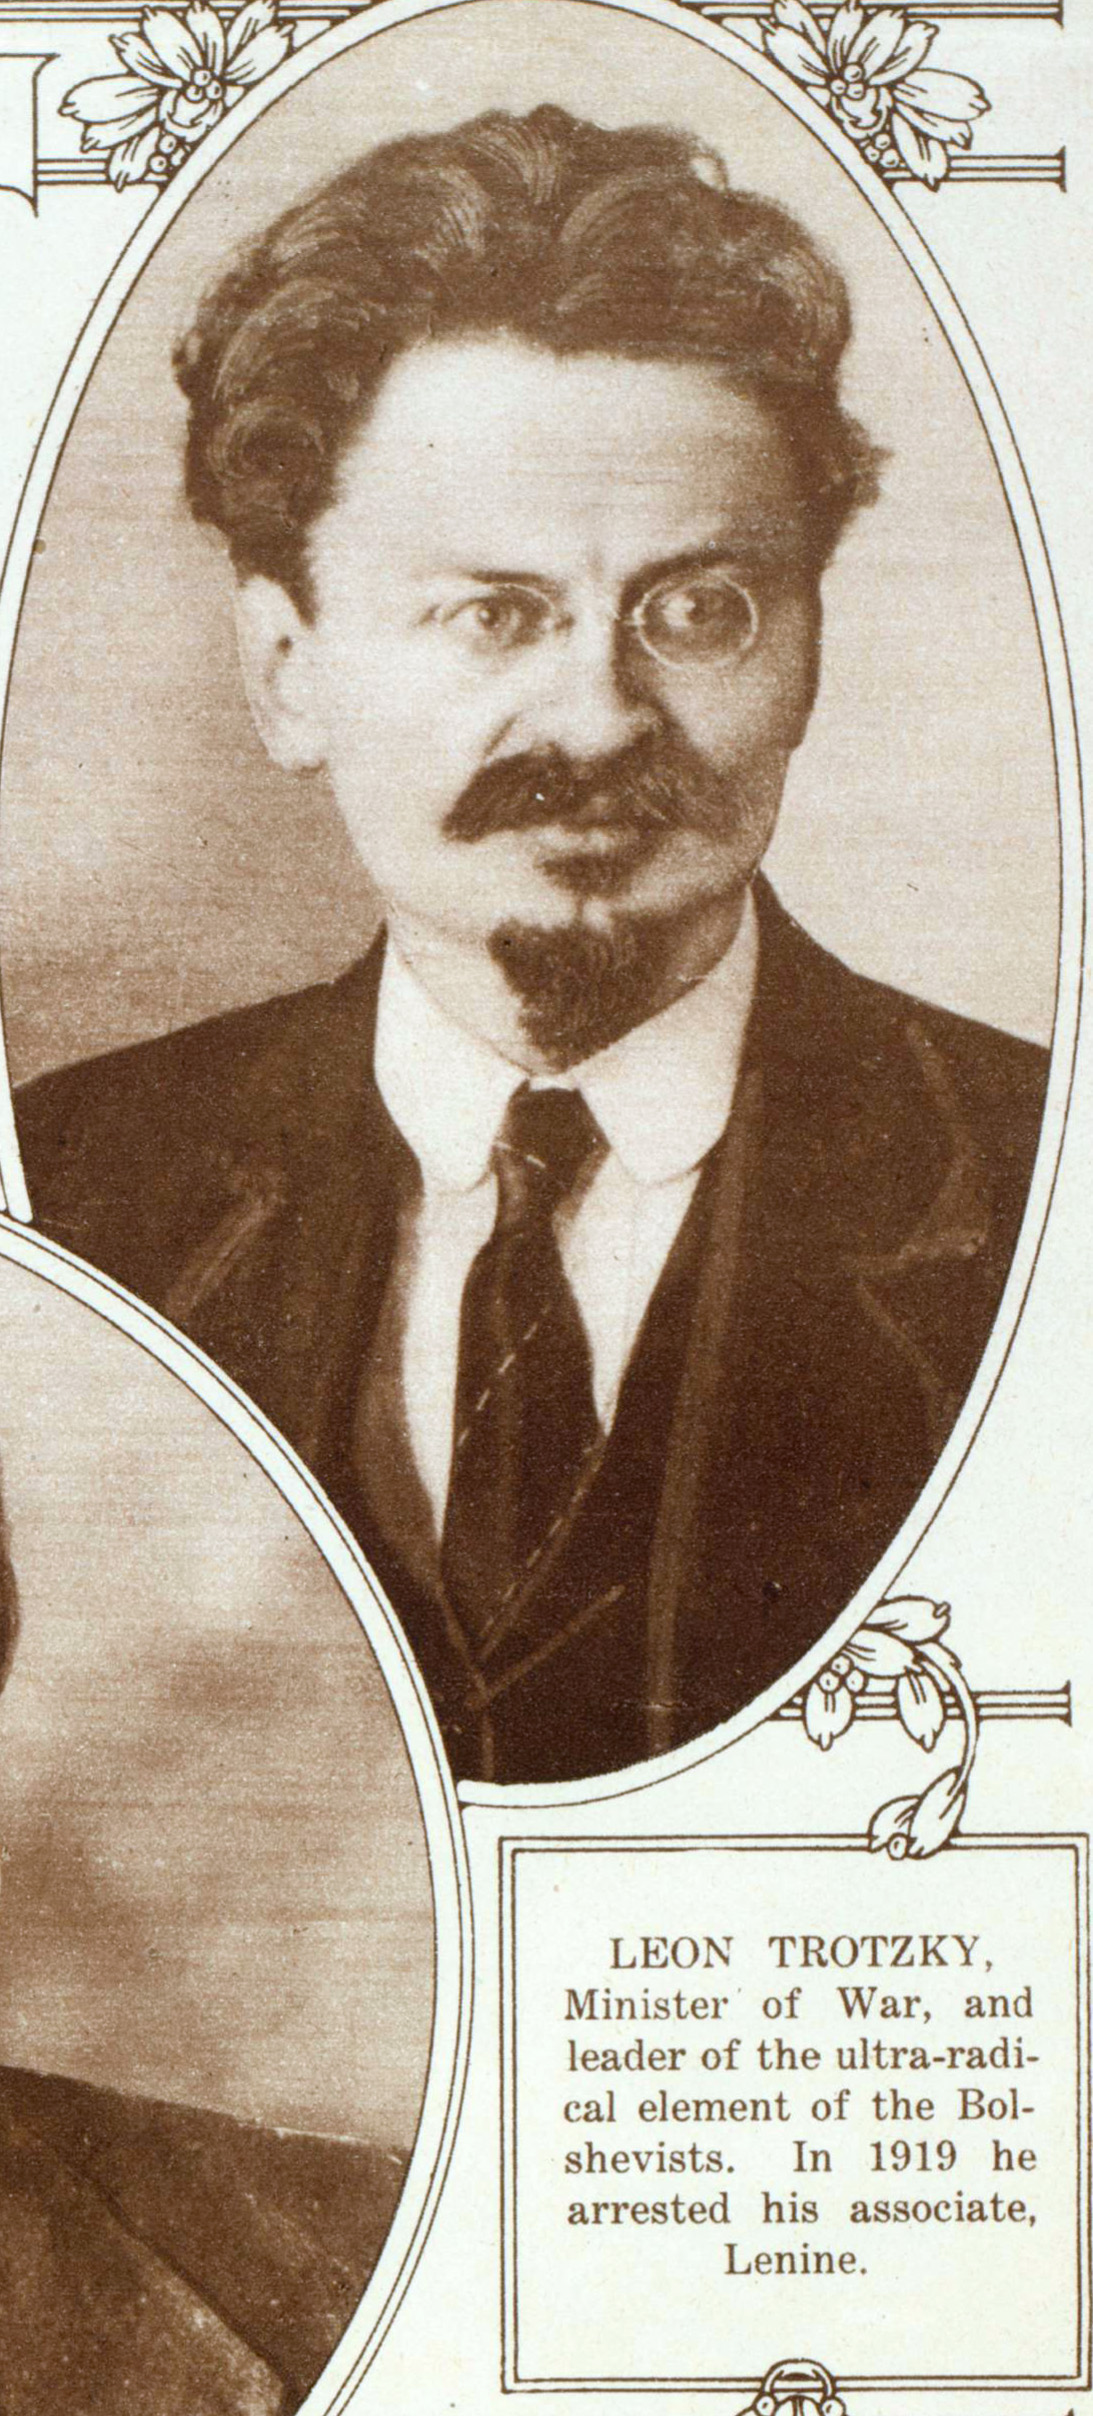 LEON TROTZKY, Minister of War, and leader of ultra-radical element of the Bolshevists. In 1919 he arrested his associate, Lenine. Лев Троцкий